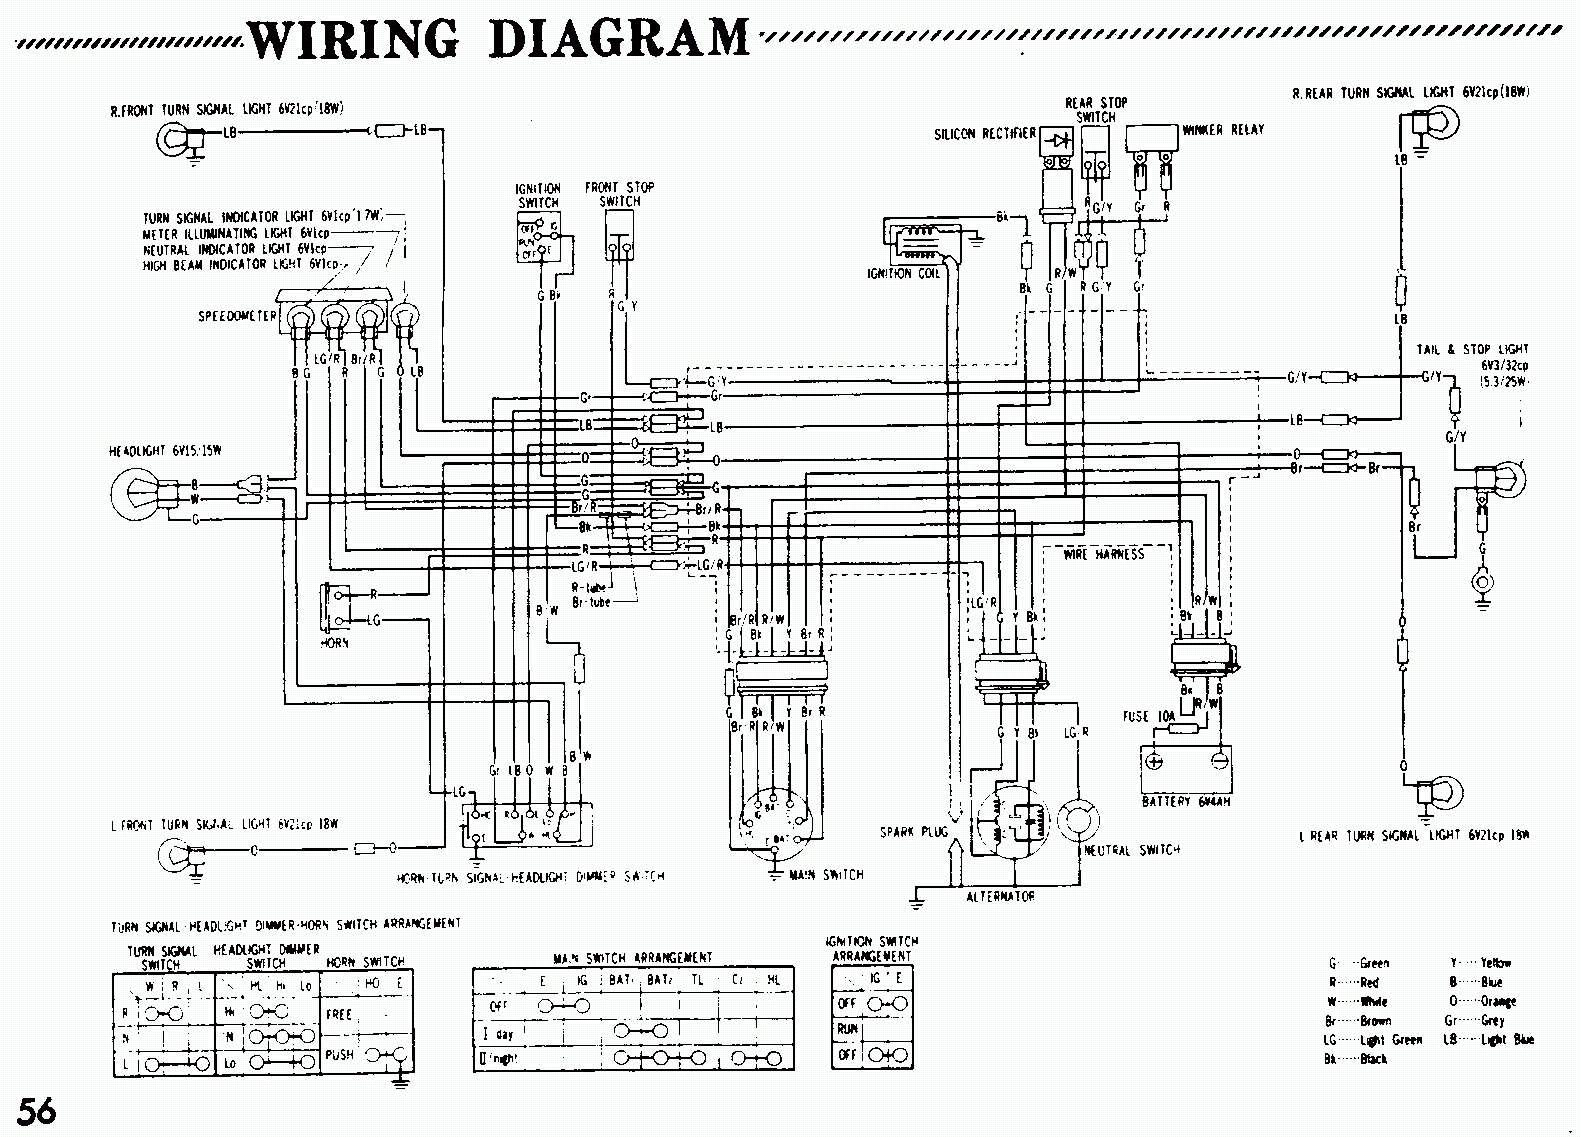 Honda C70 Wiring Diagram from tboltusa.com